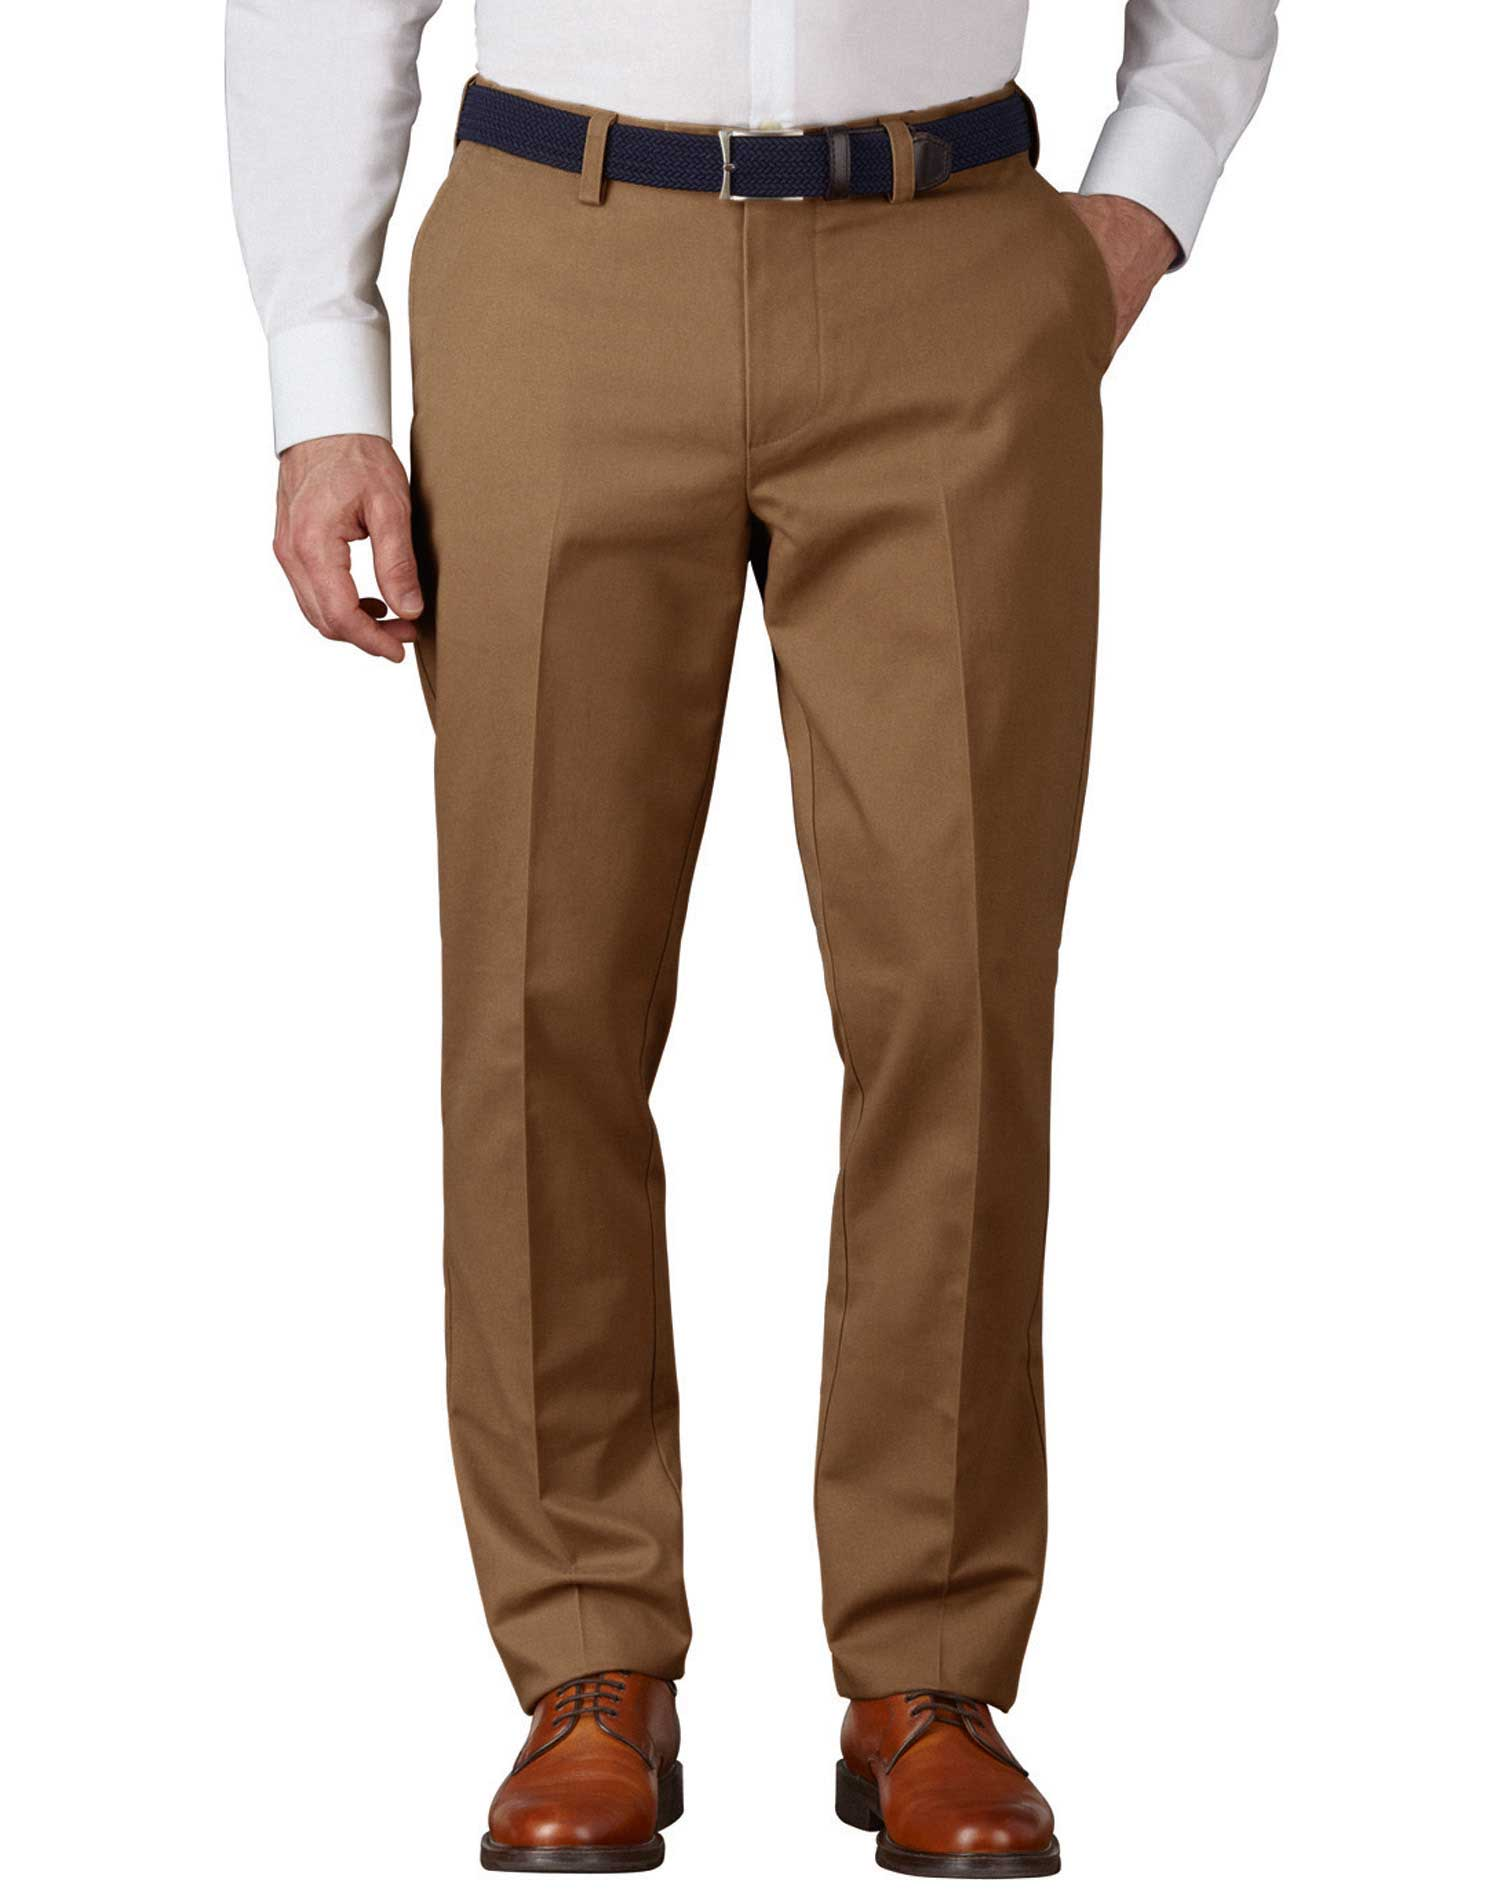 Camel Extra Slim Fit Flat Front Non-Iron Cotton Chino Trousers Size W30 L32 by Charles Tyrwhitt